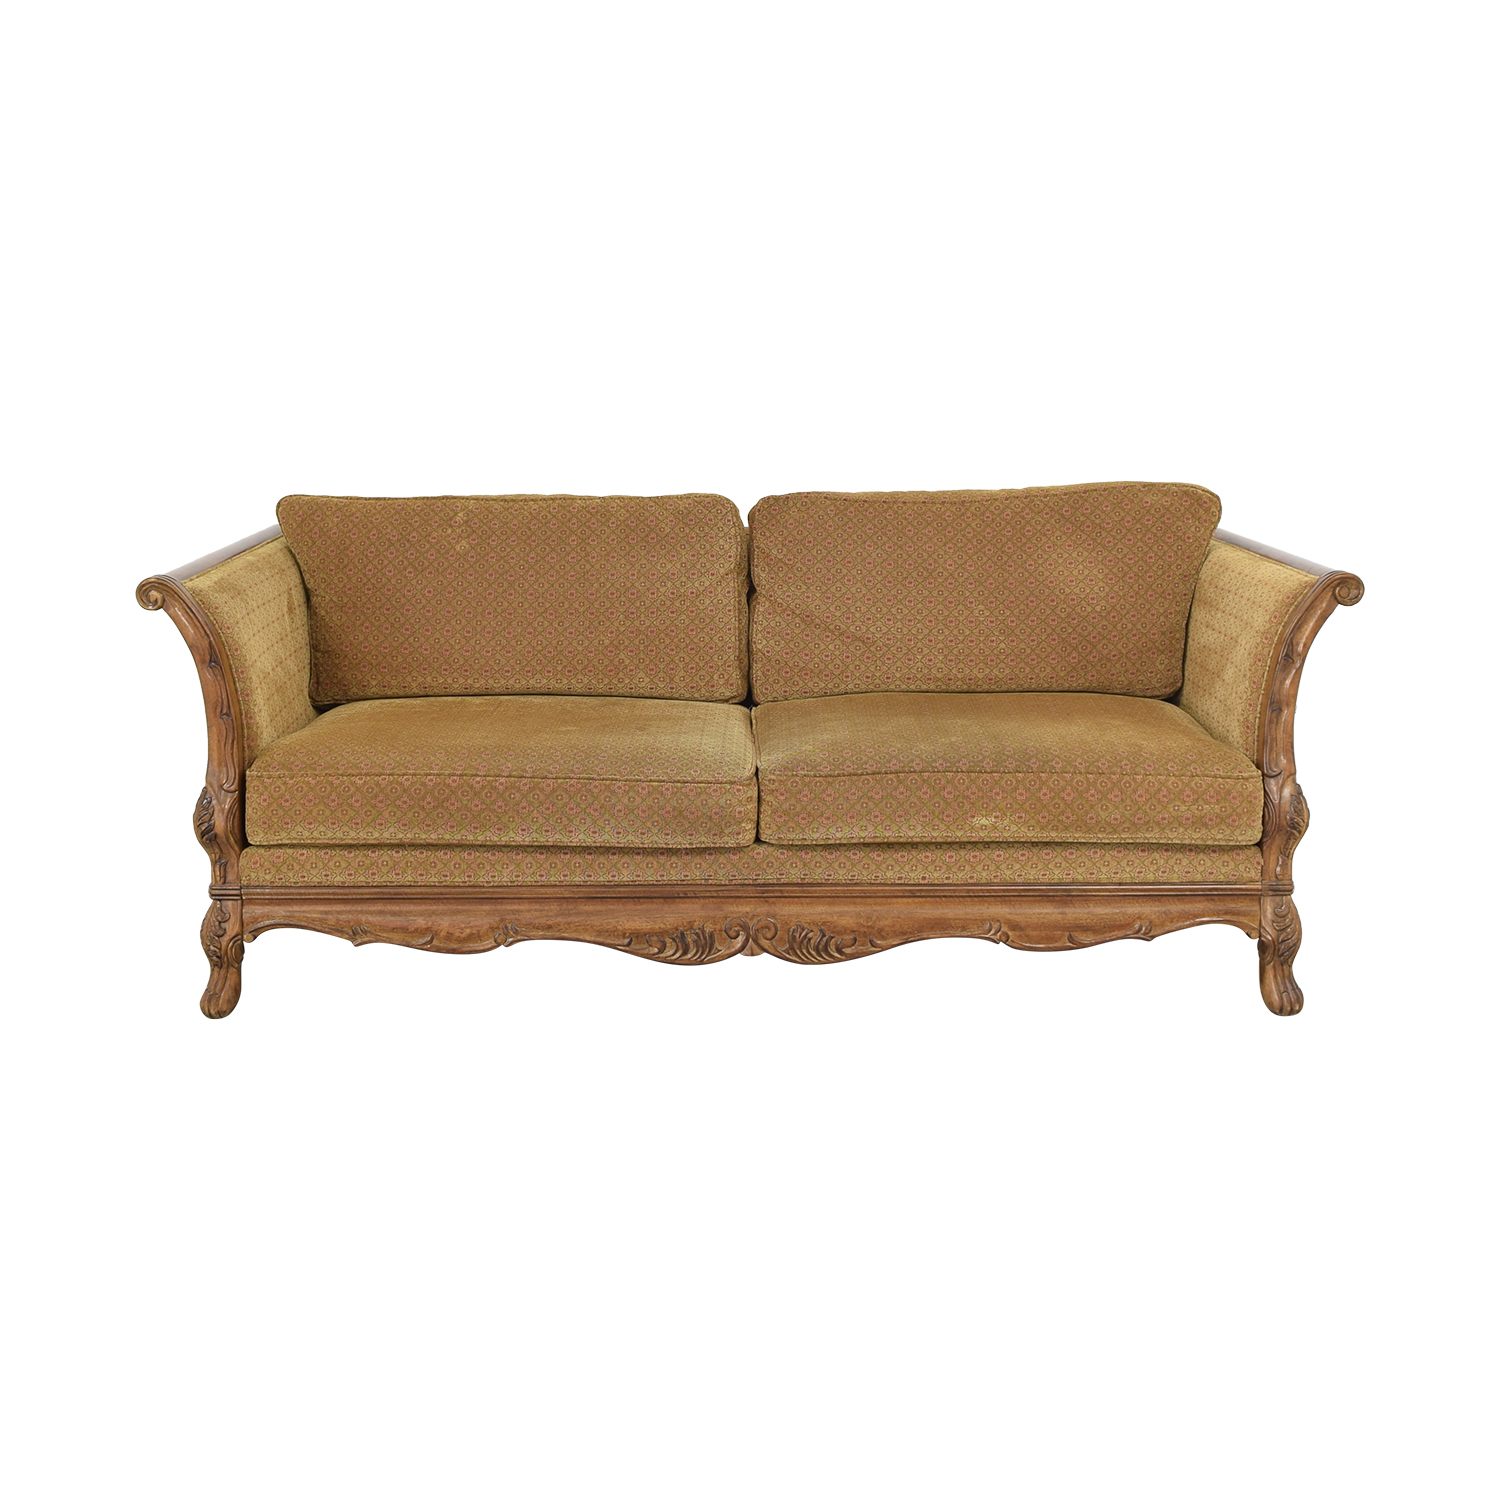 Bernhardt Bernhardt Traditional Sofa nyc